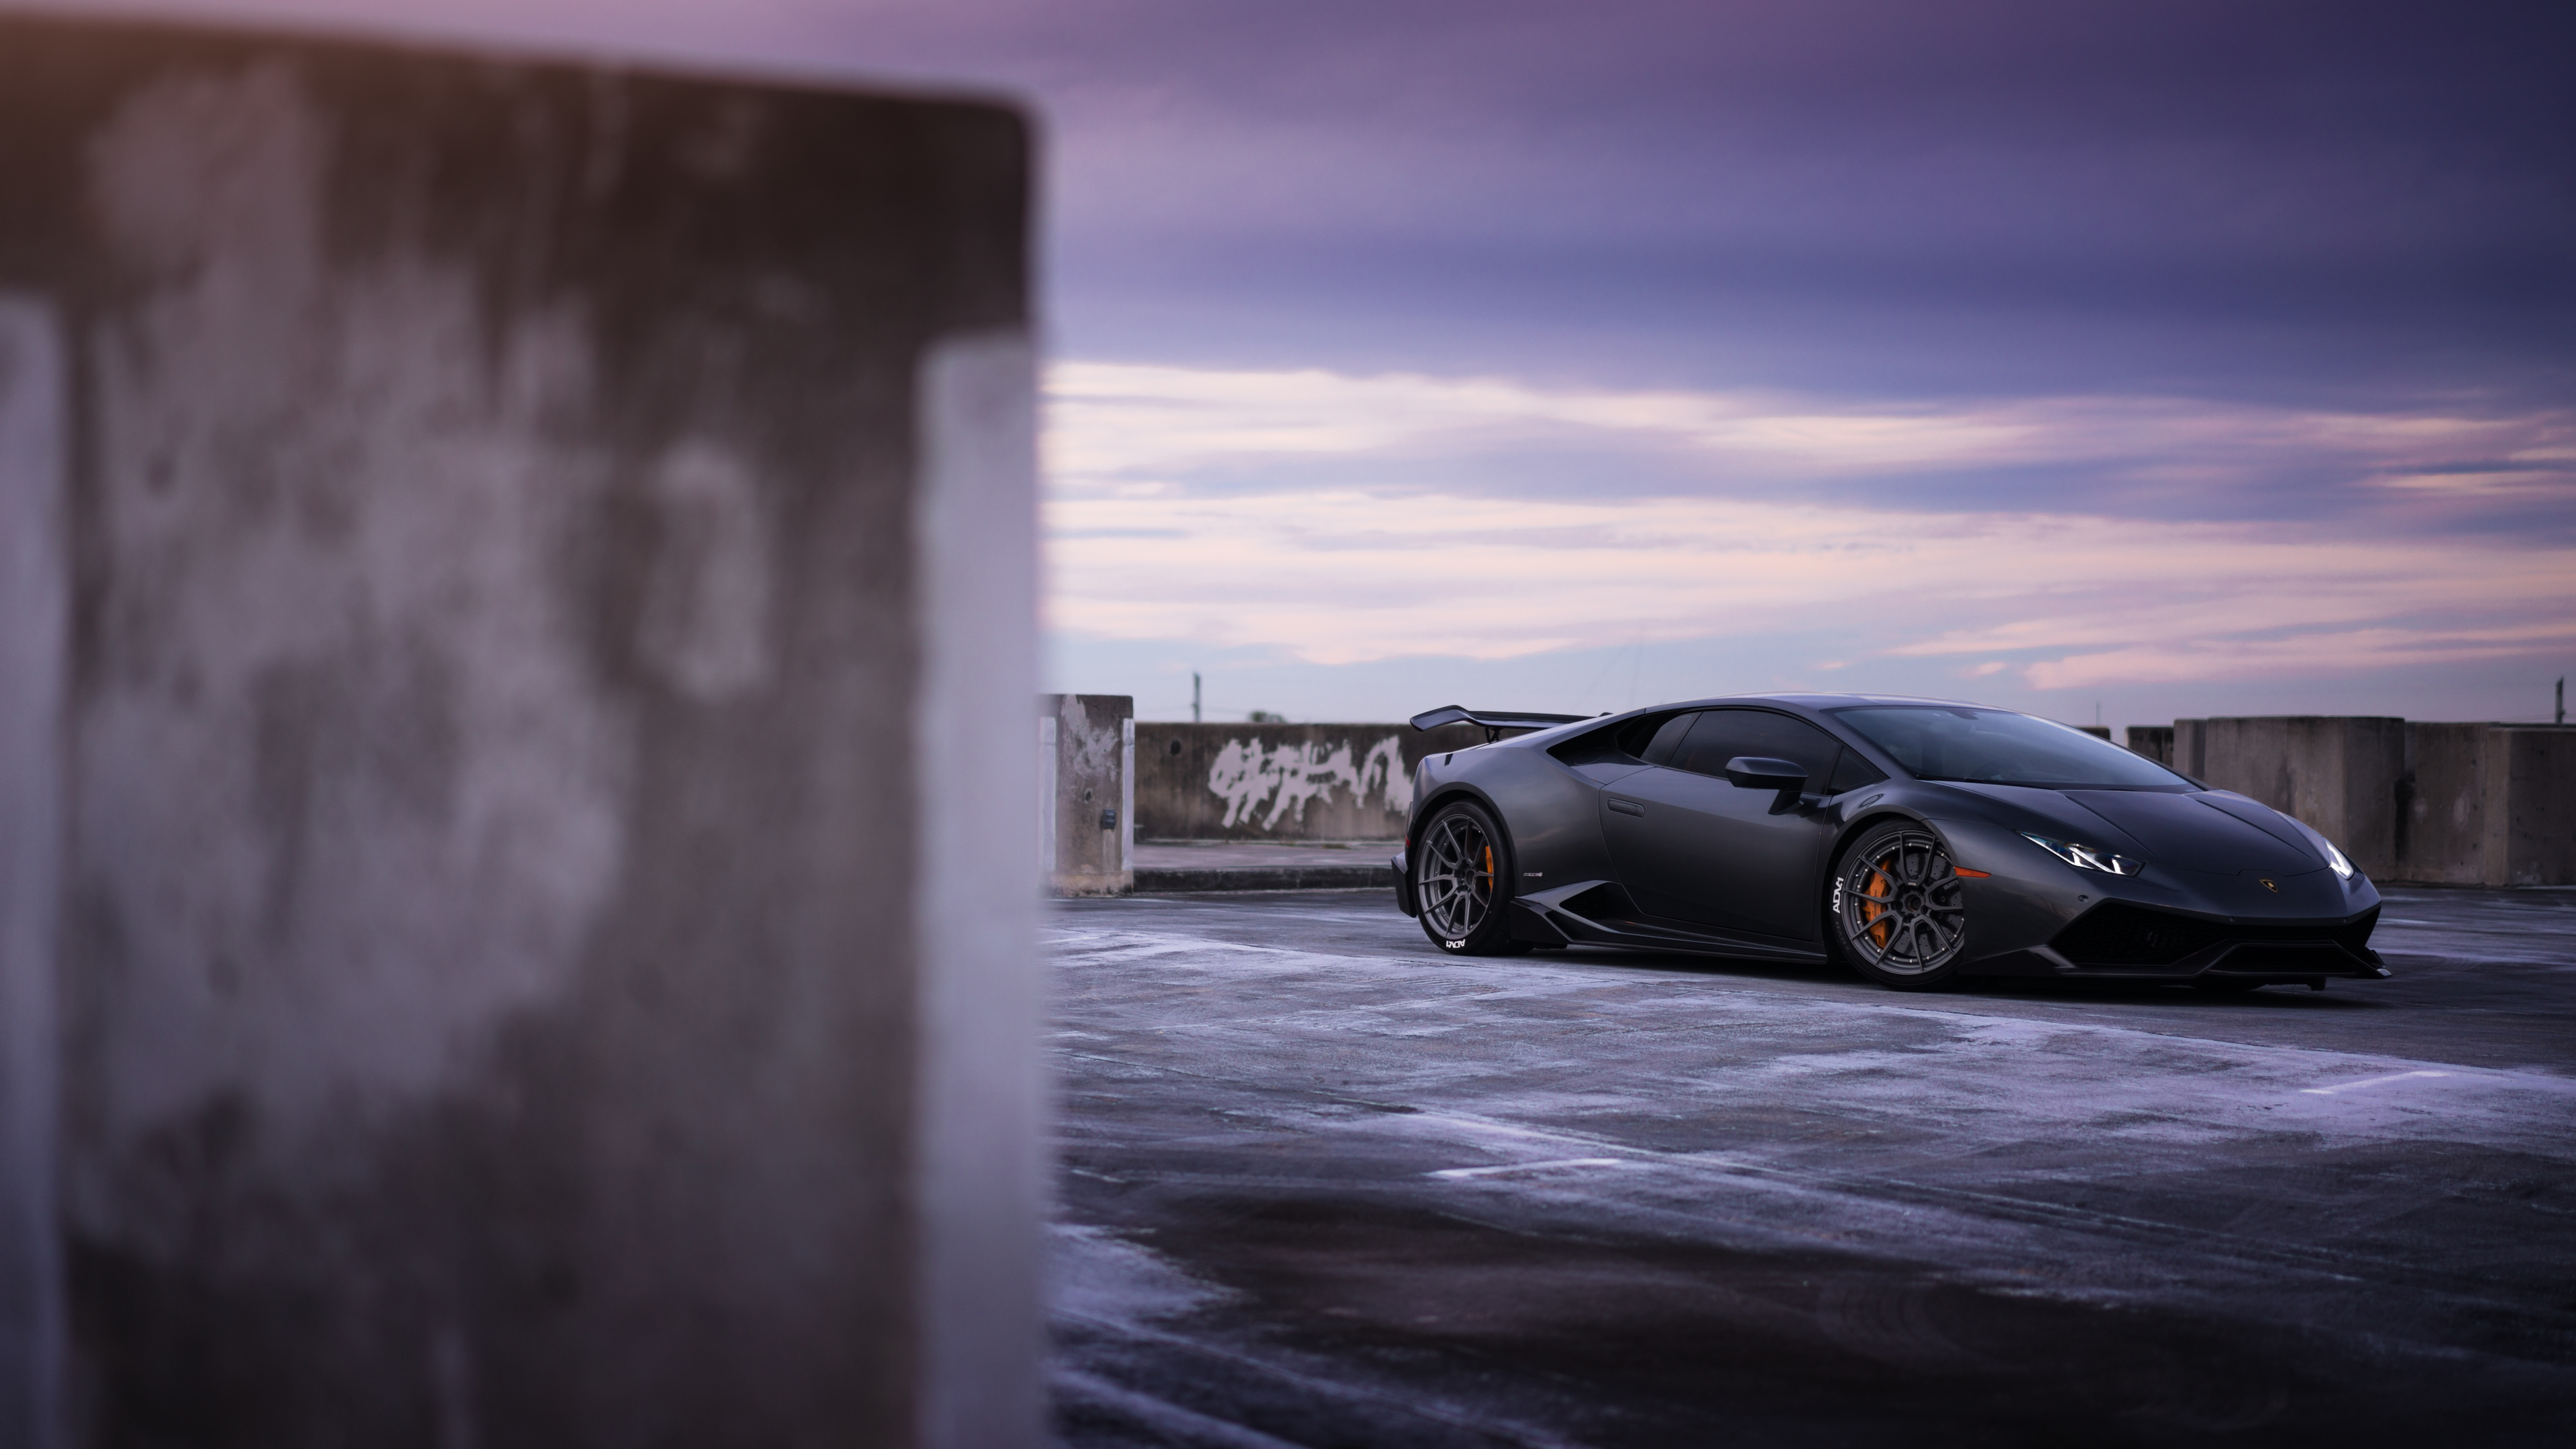 black lamborghini huracan 2018 1539111936 - Black Lamborghini Huracan 2018 - lamborghini wallpapers, lamborghini huracan wallpapers, hd-wallpapers, cars wallpapers, 8k wallpapers, 5k wallpapers, 4k-wallpapers